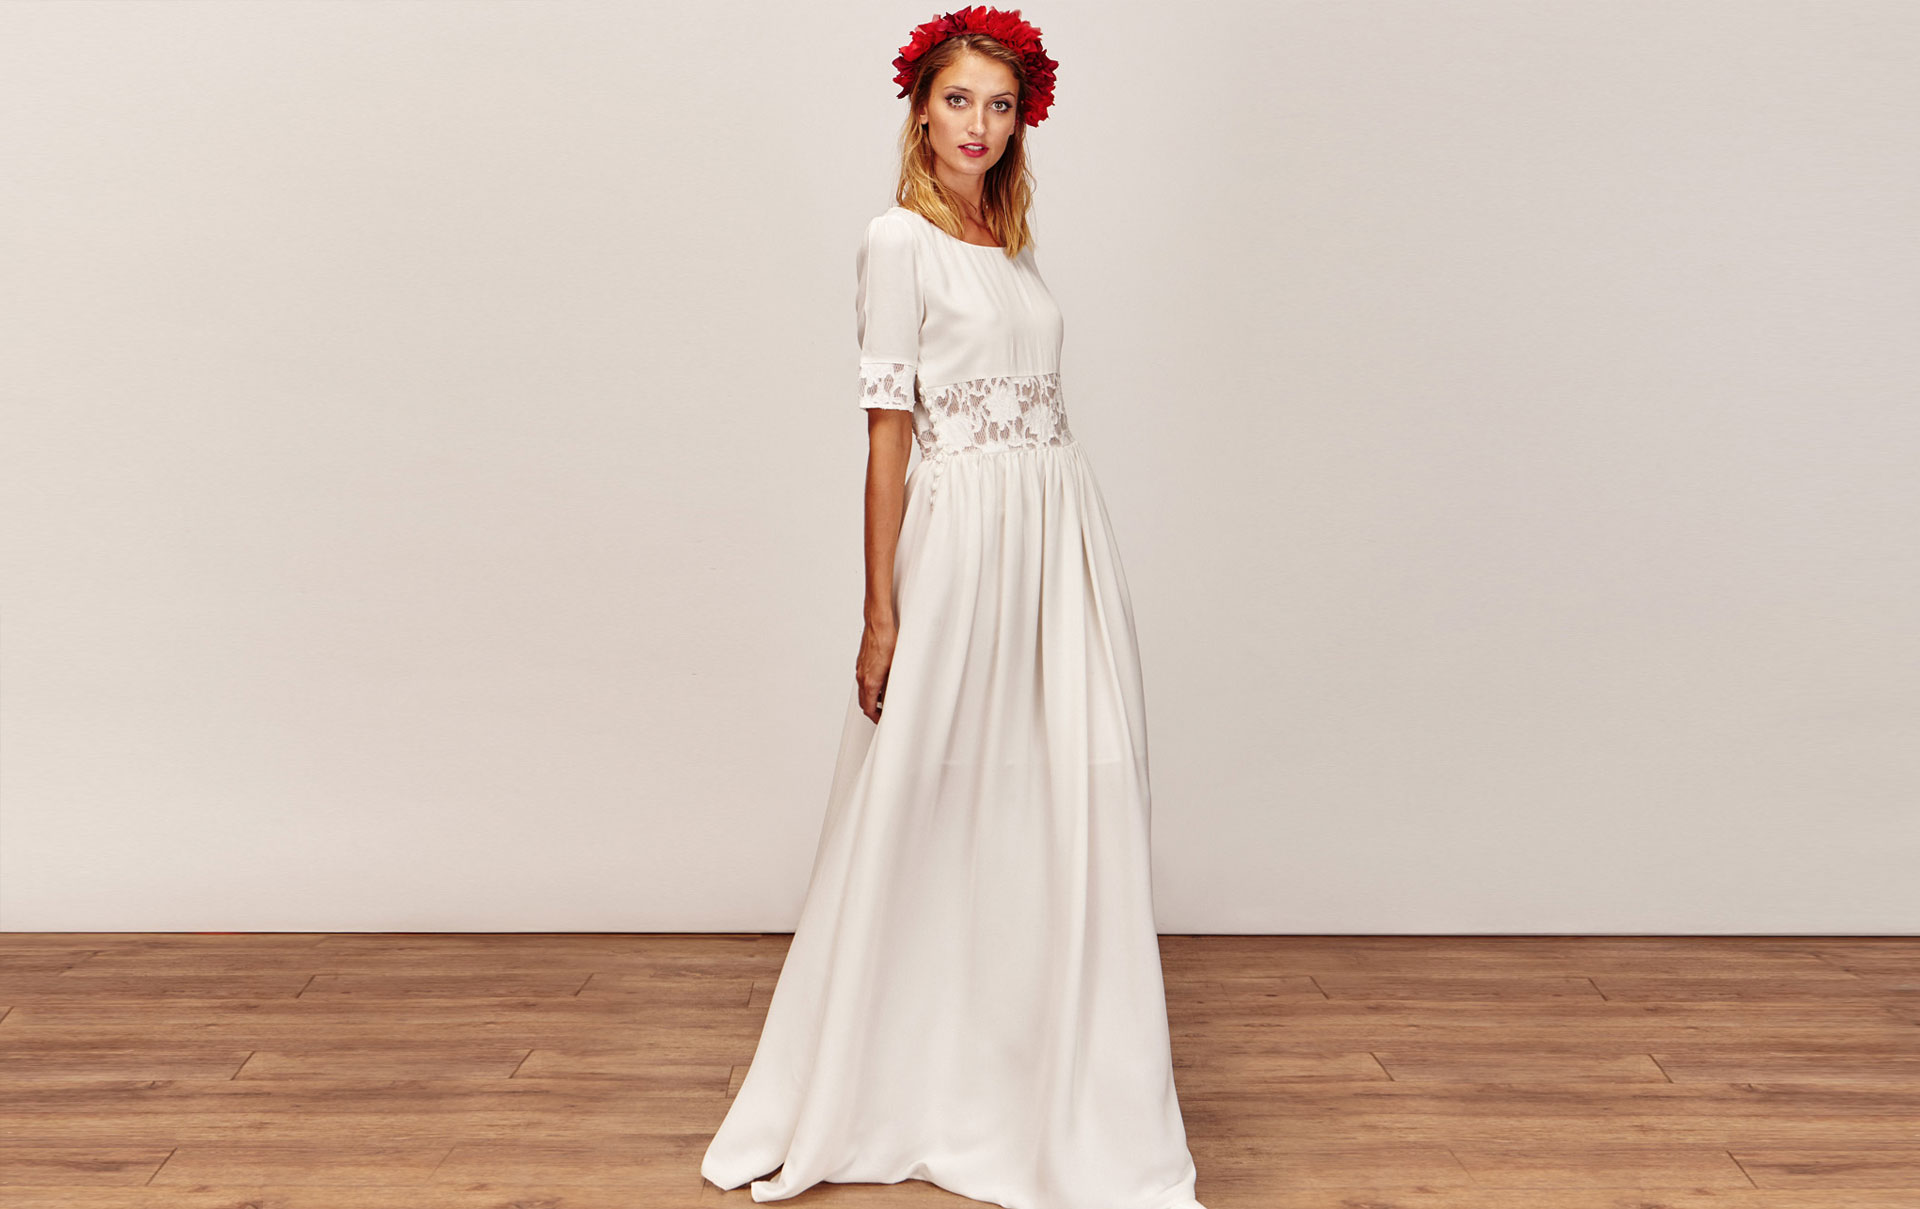 Robe mariee moderne pas cher